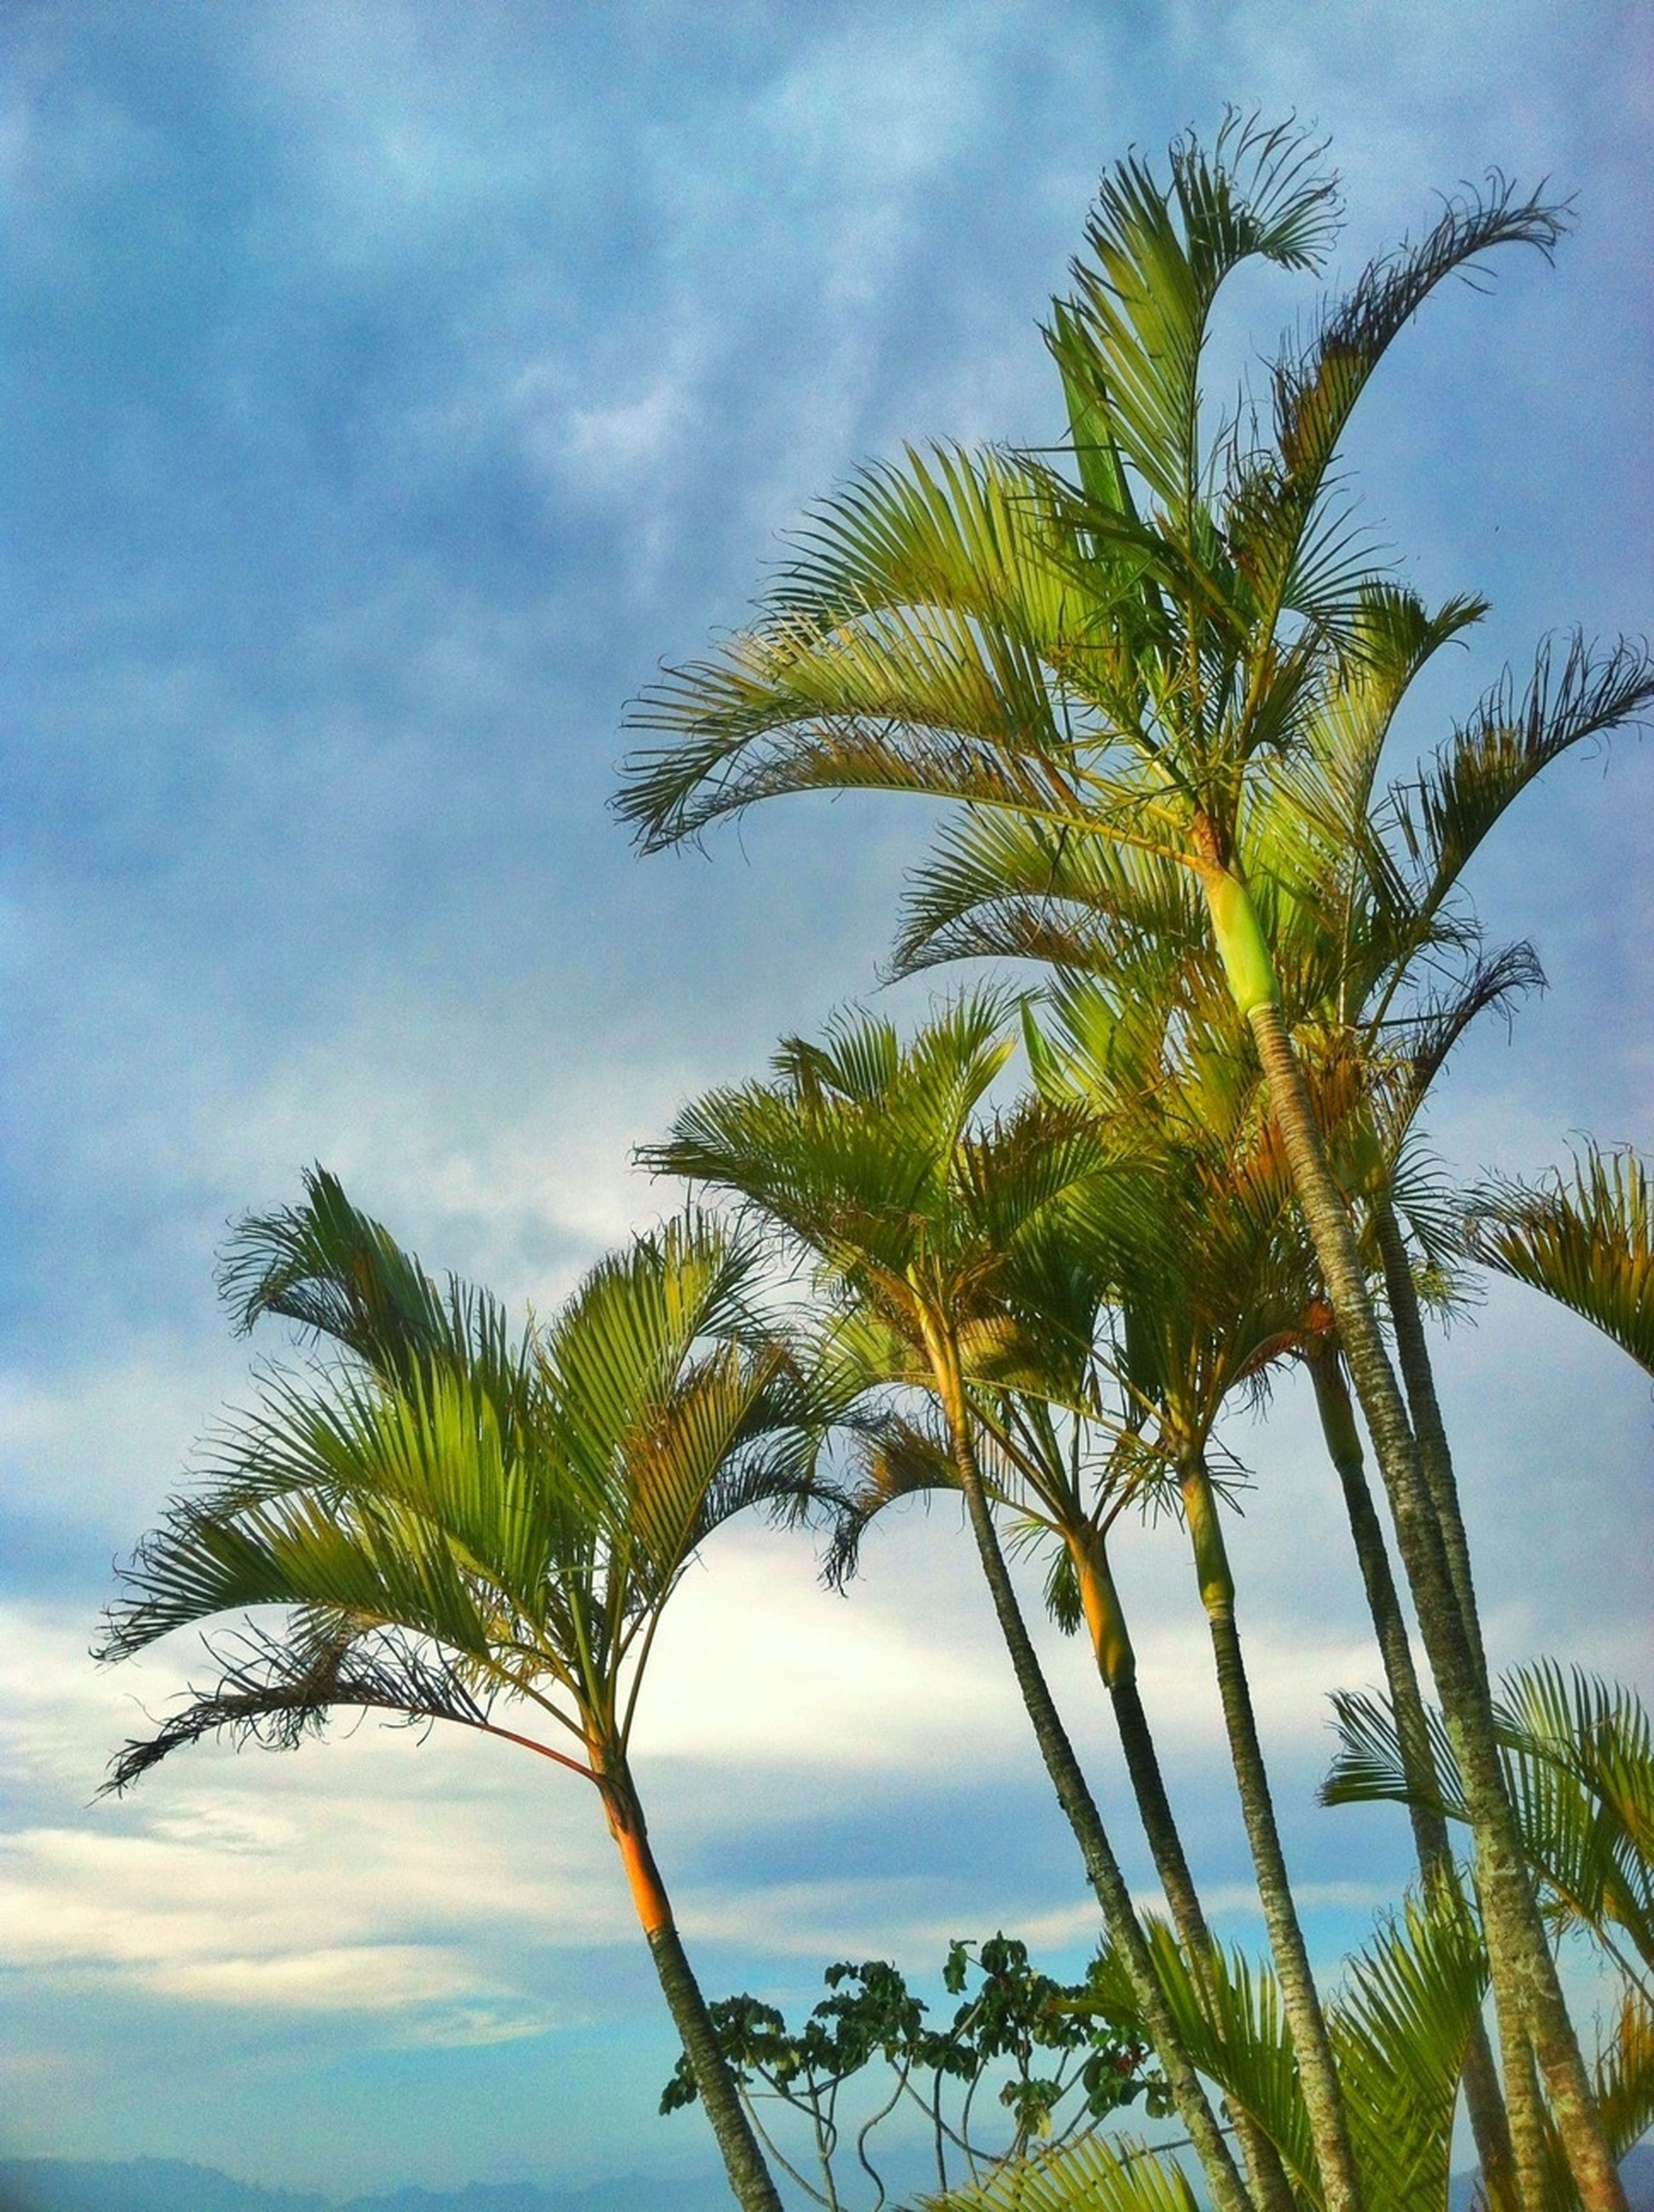 sky, palm tree, low angle view, tree, growth, tranquility, cloud - sky, nature, cloud, beauty in nature, scenics, tranquil scene, leaf, blue, tree trunk, cloudy, green color, branch, day, outdoors